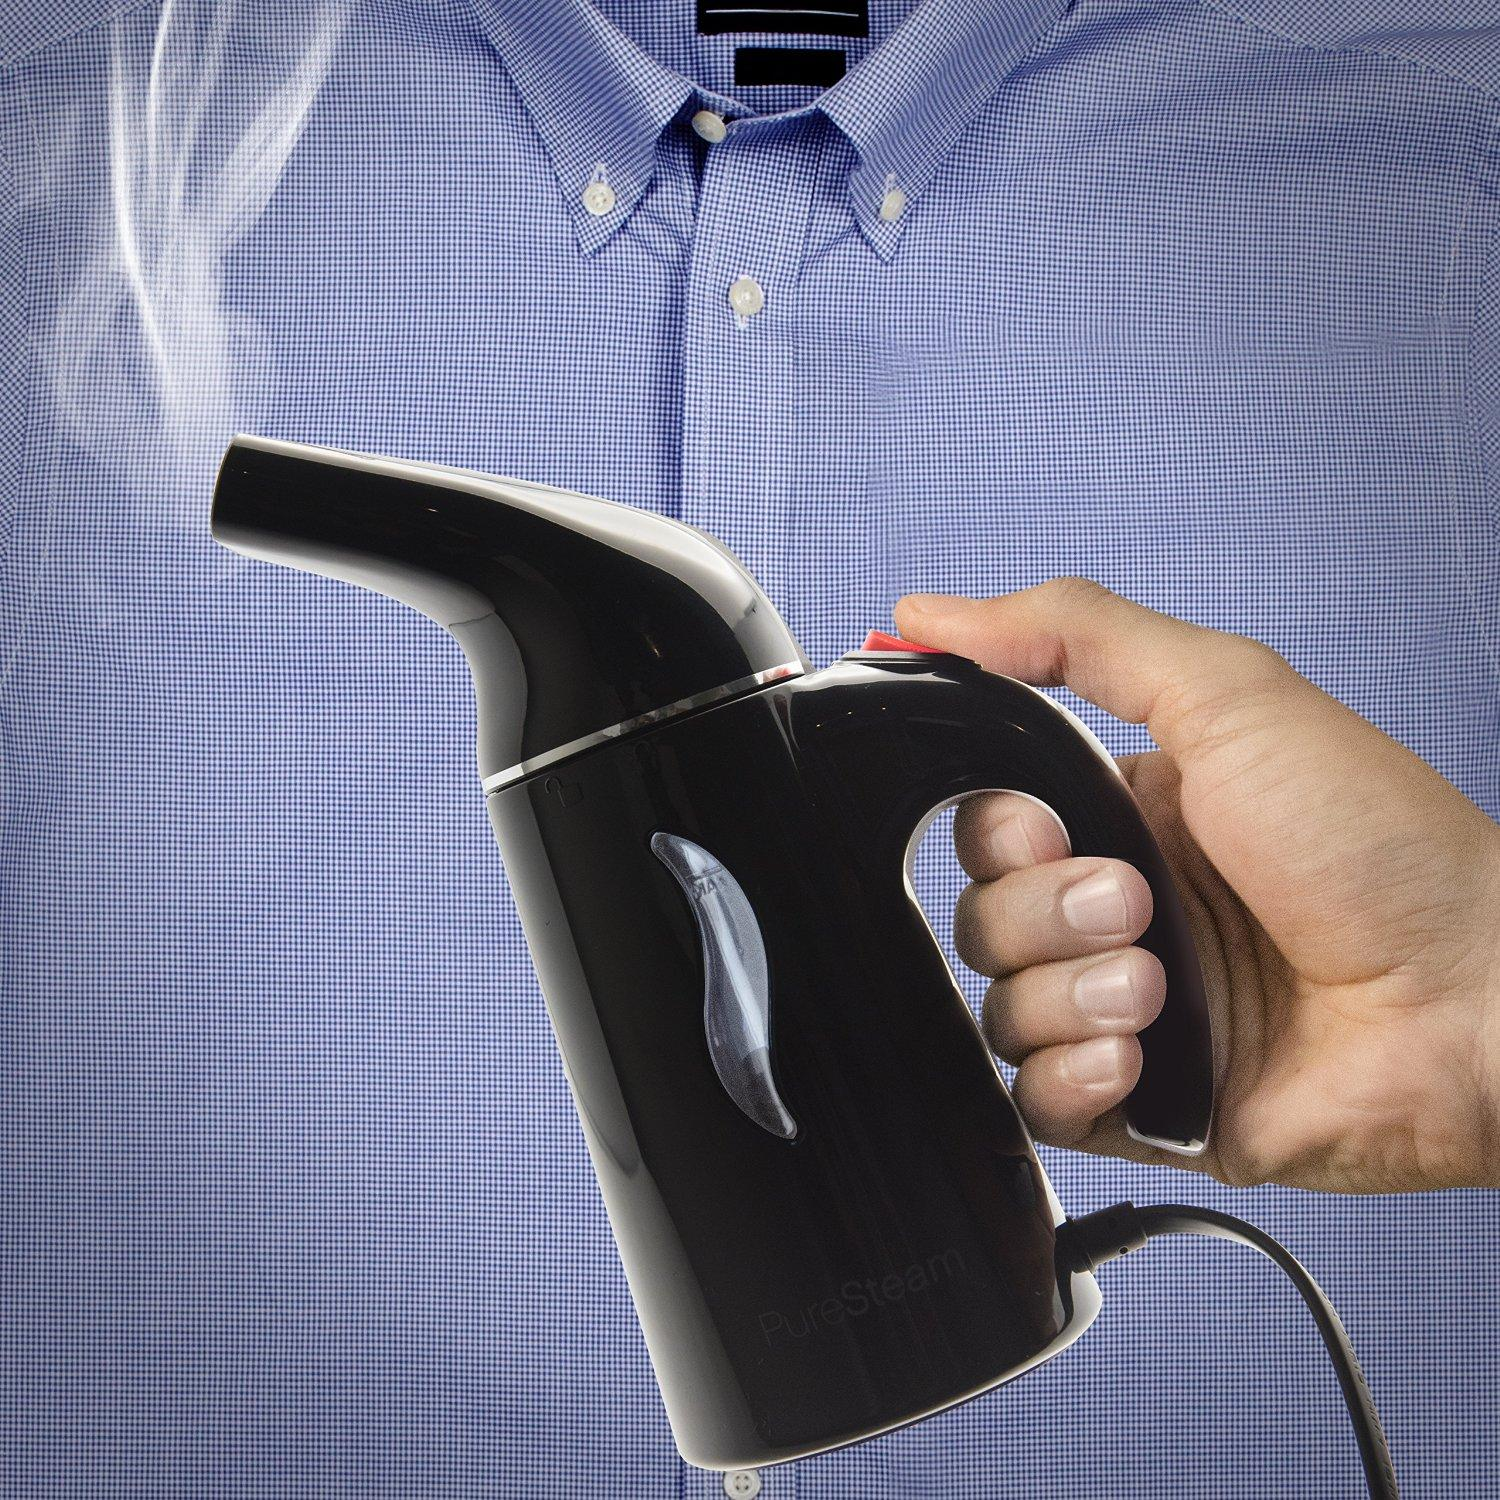 PureSteam Portable Fabric Steamer - Fast-Heating, Handheld Design Perfect for Home and Travel